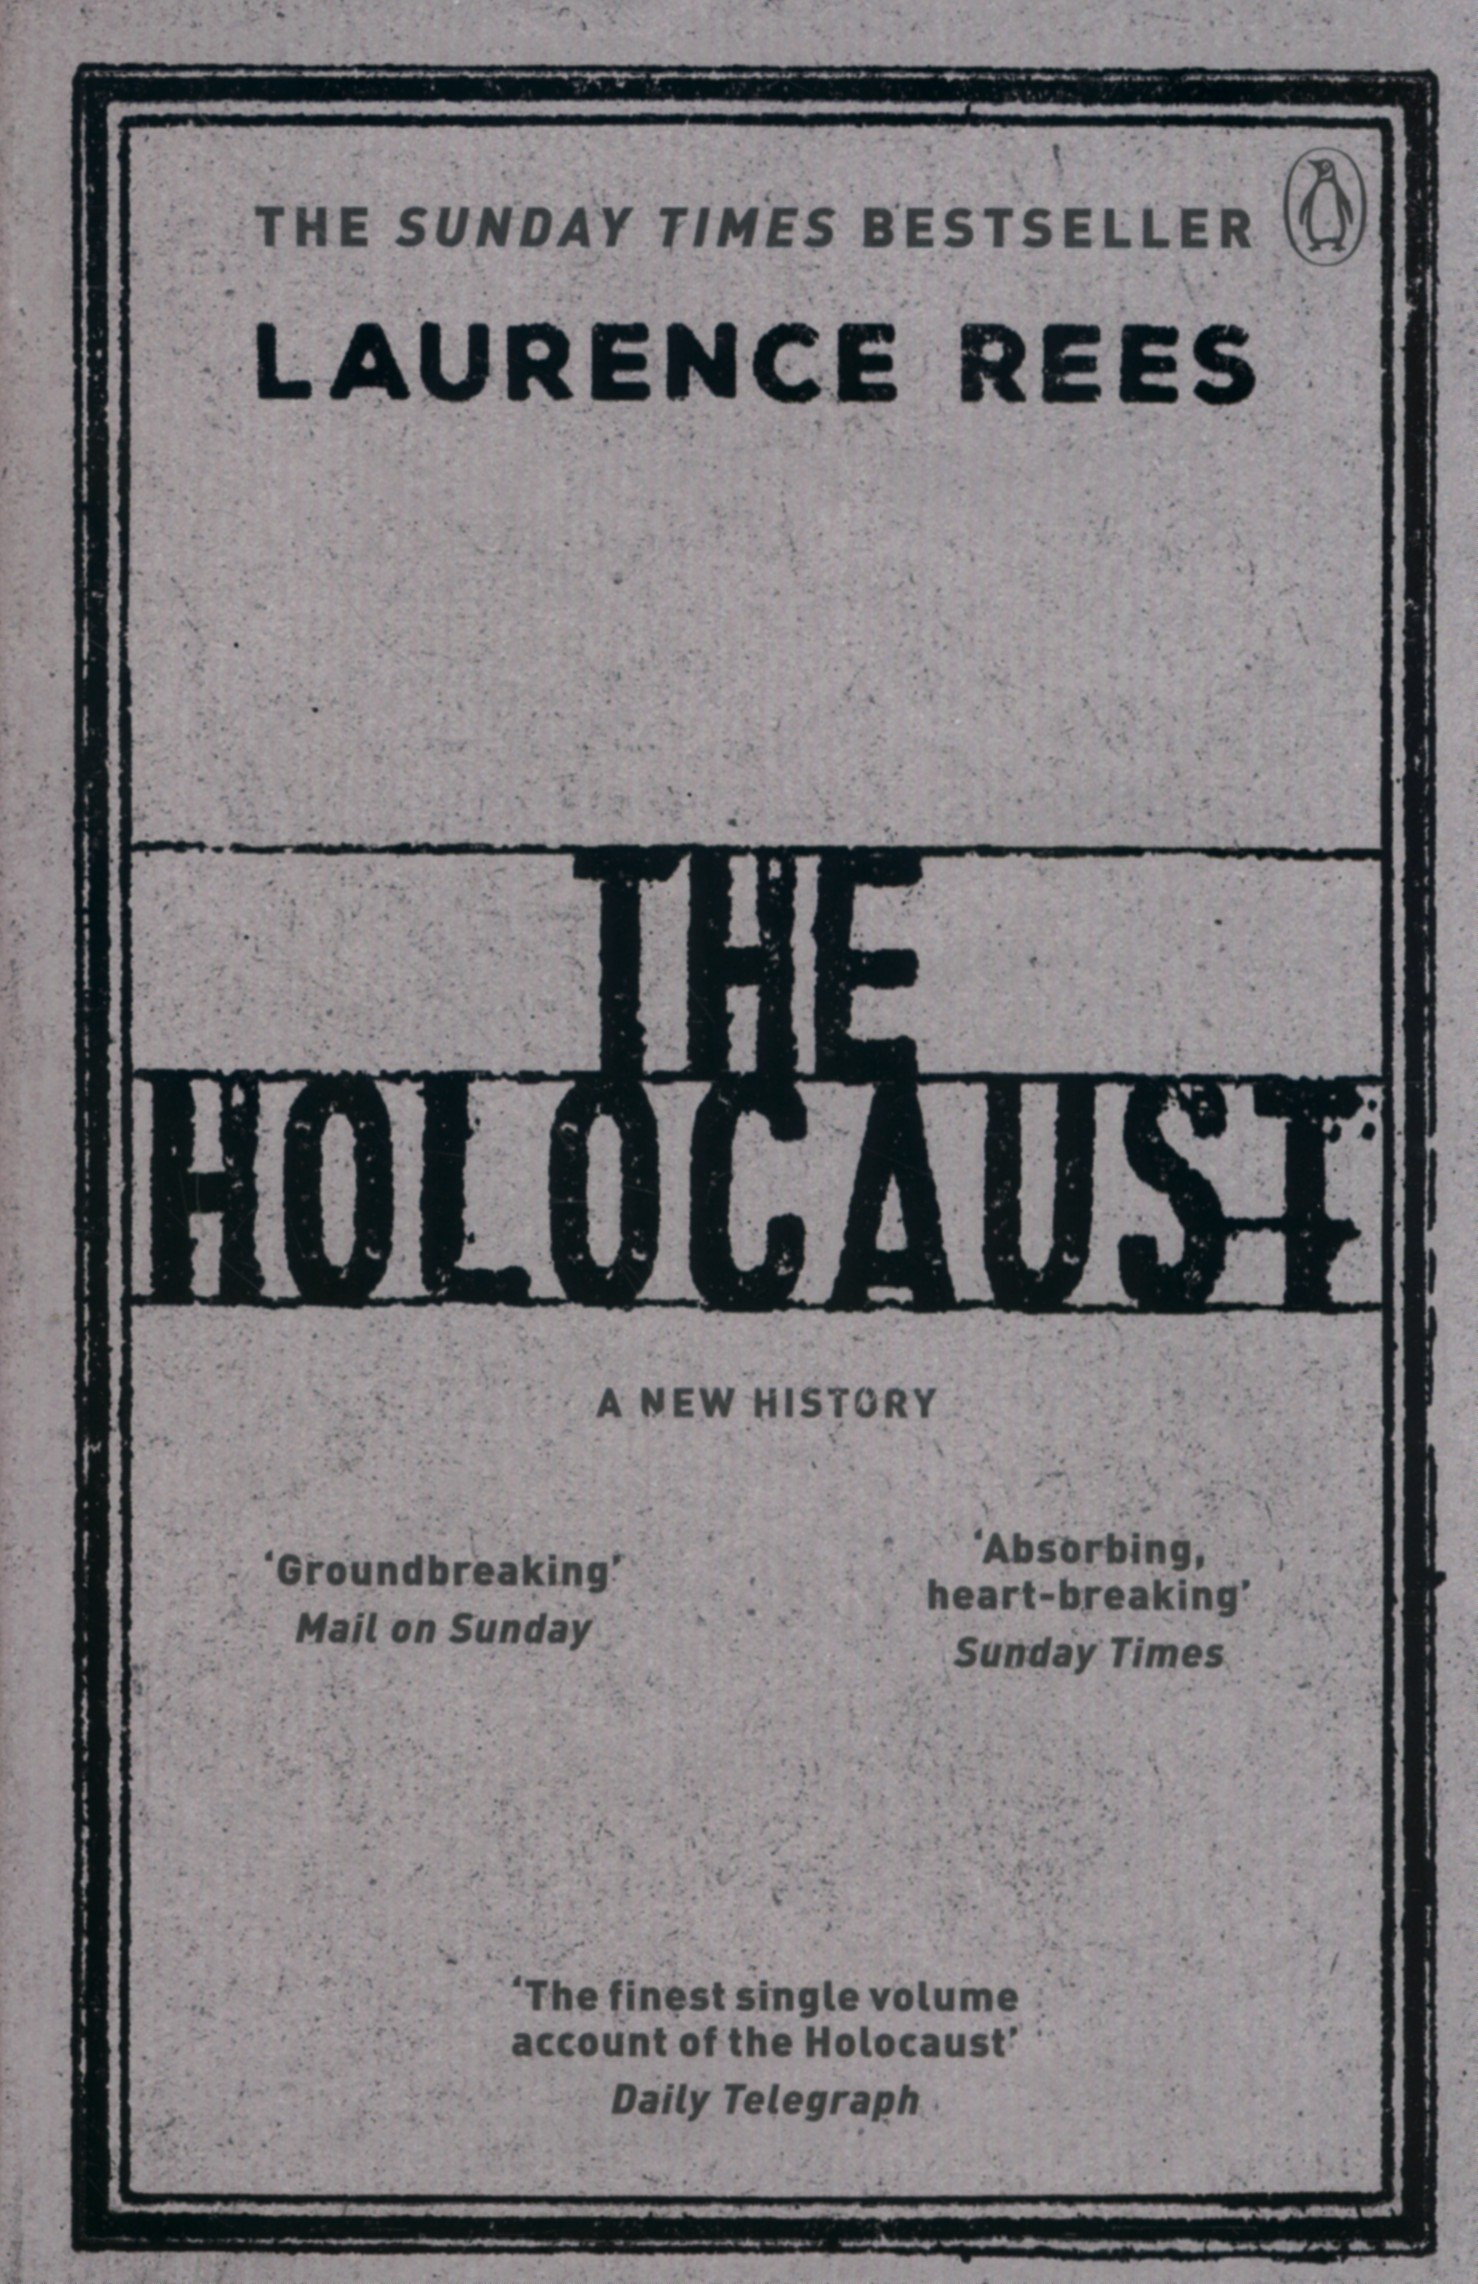 historical significance of the holocaust